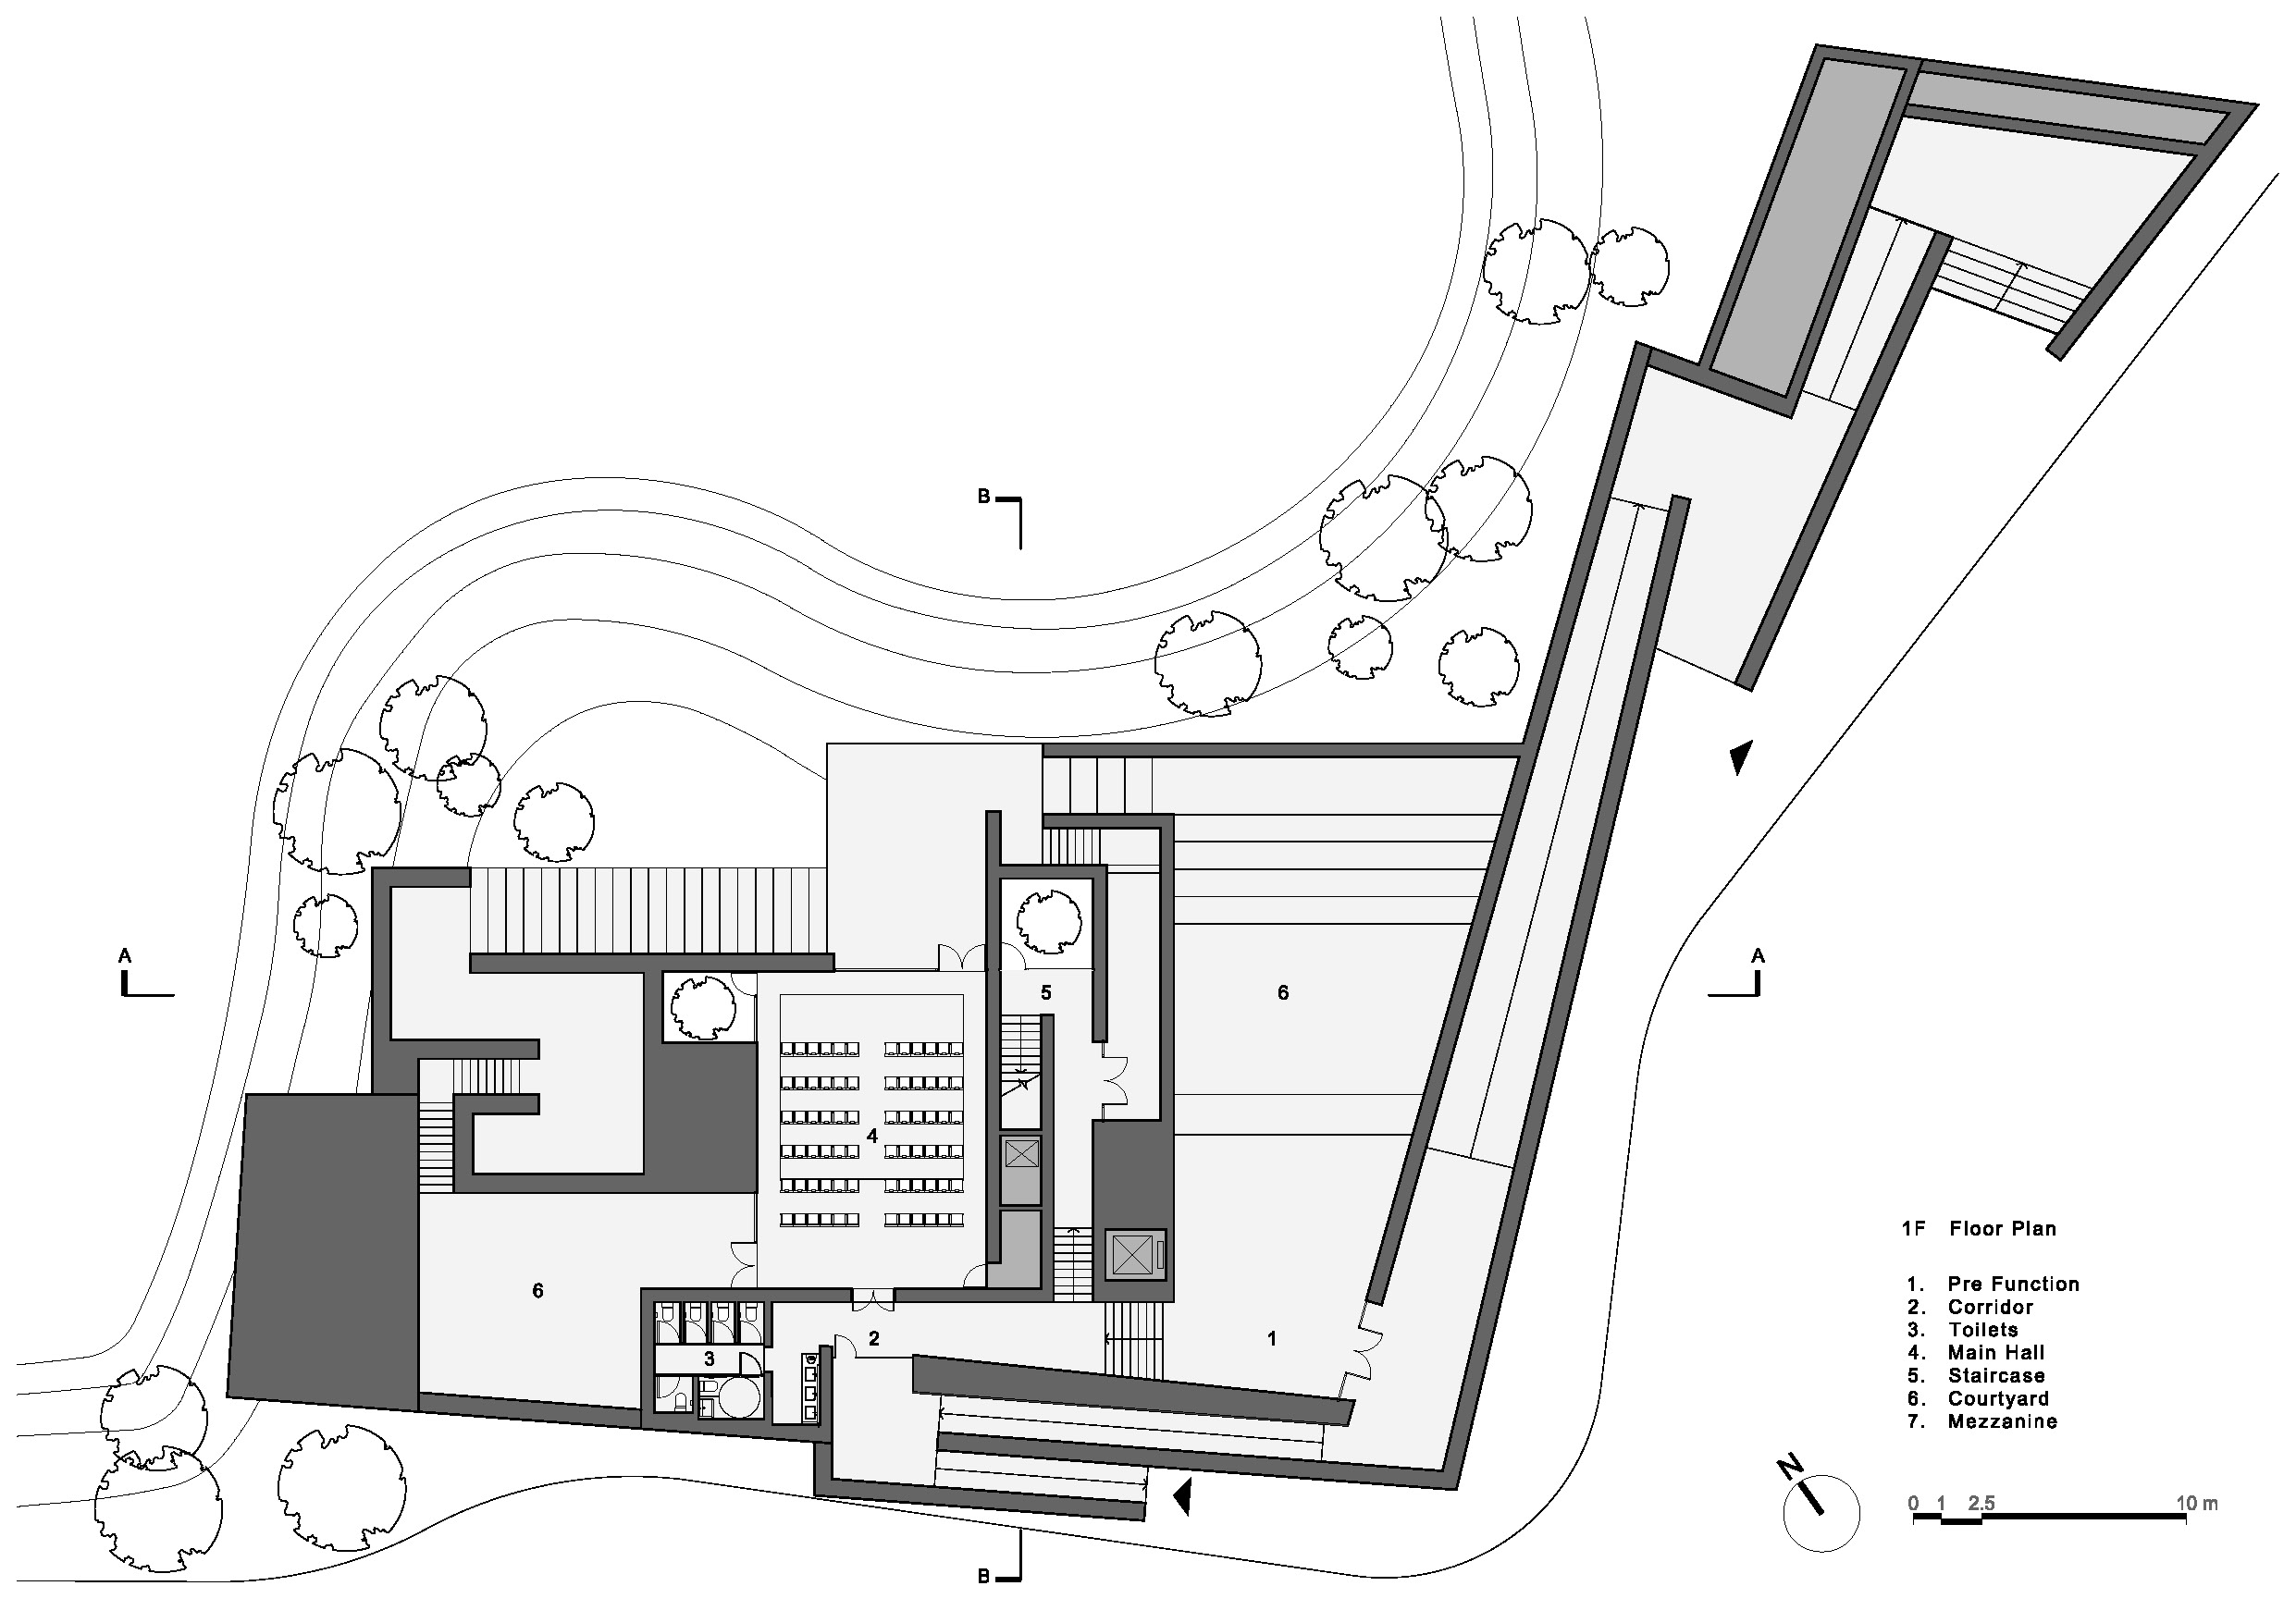 Plan courtesy Neri & Hu Design and Research Office